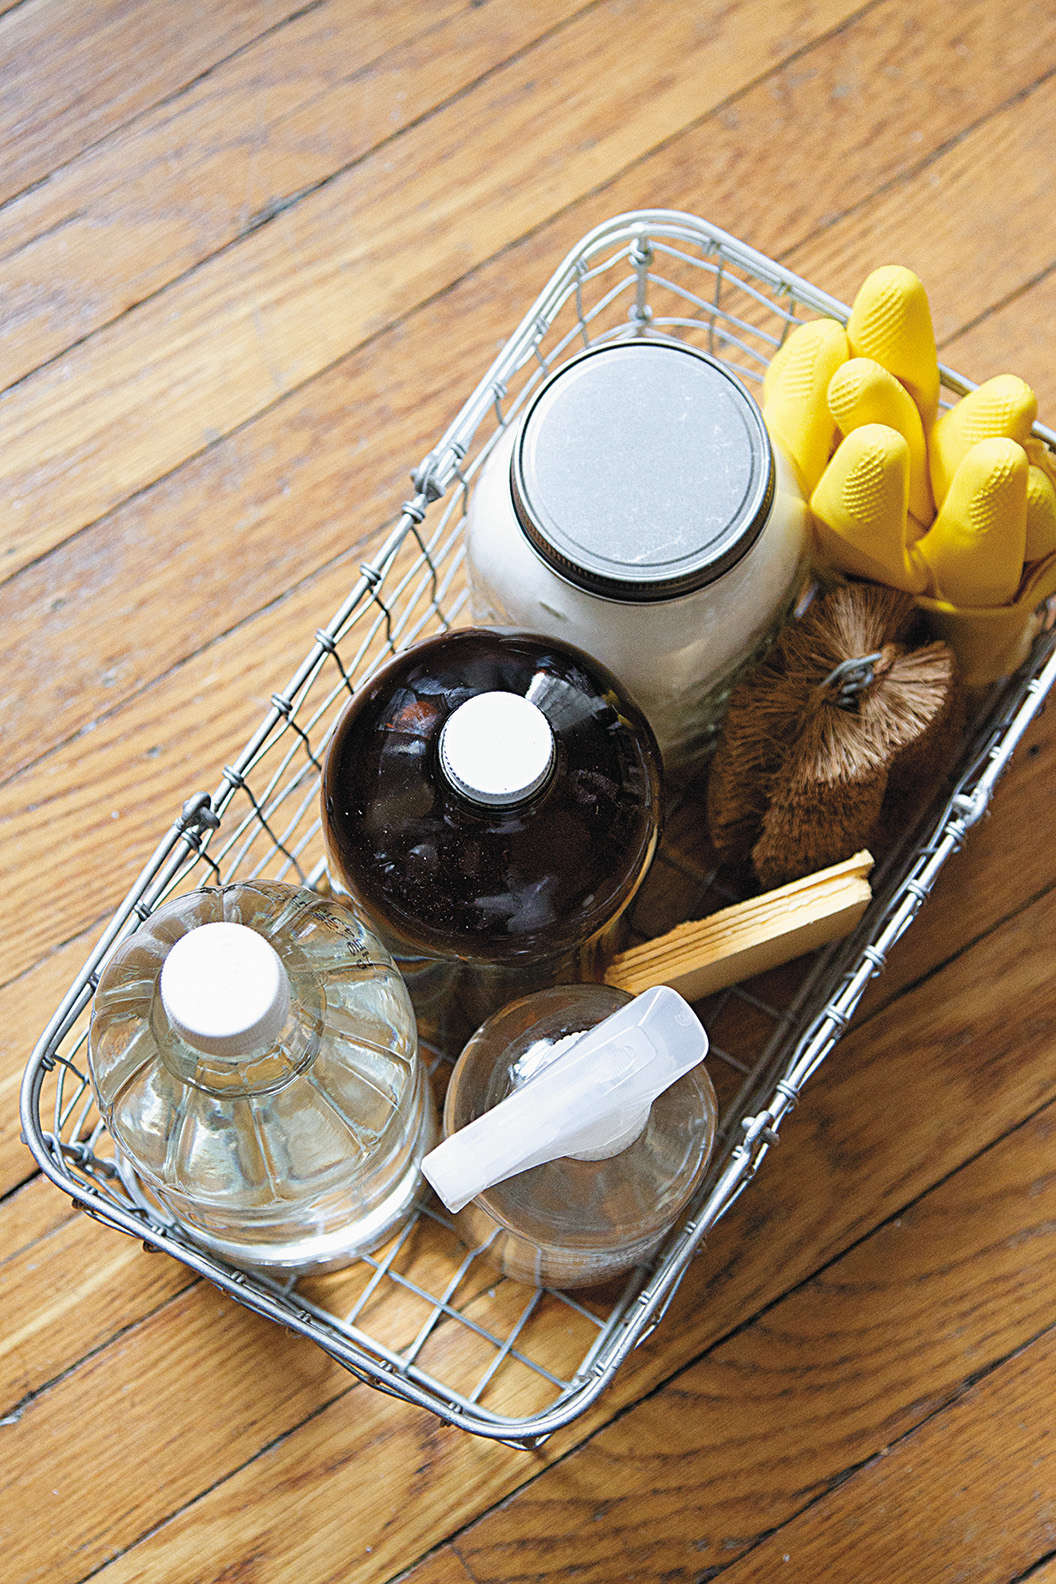 Simple DIY cleaning supplies made from vinegar and baking soda by Erin Boyle from her new book, Simple Matters | Remodelista